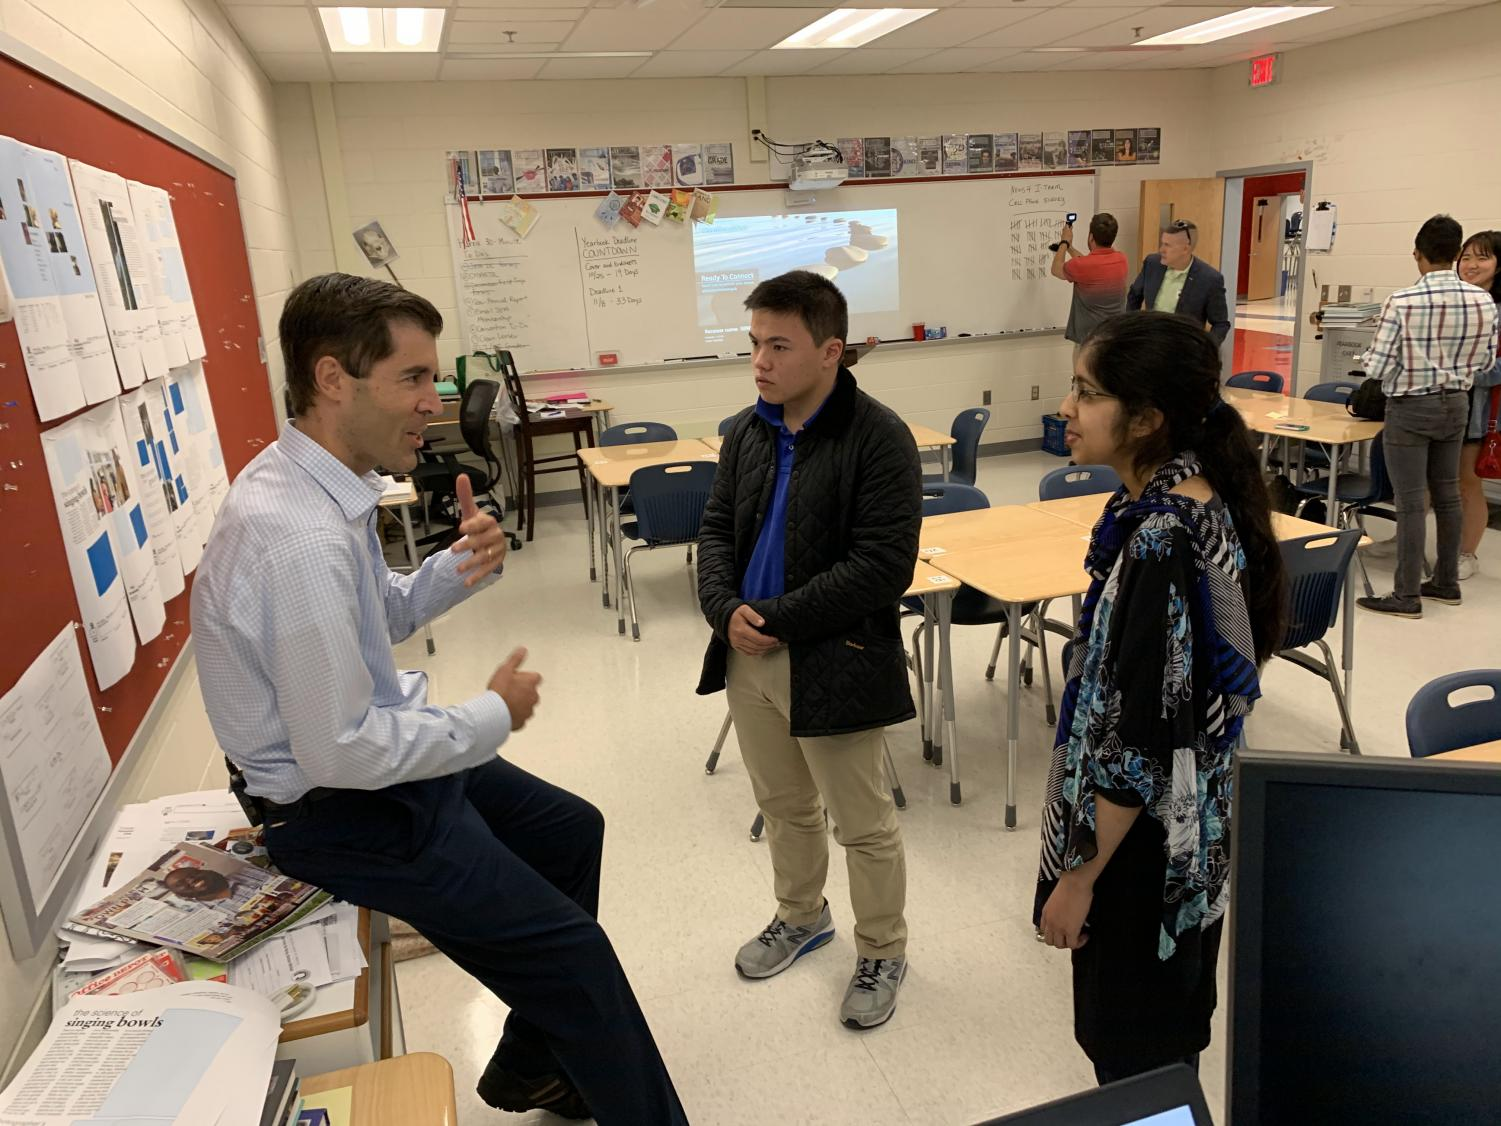 NBC News4 I-Team Investigative Reporter Scott MacFarlane discusses questions with students after class. MacFarlane and his team surveyed Jefferson's Journalism class and provided a lesson on effective journalism writing.